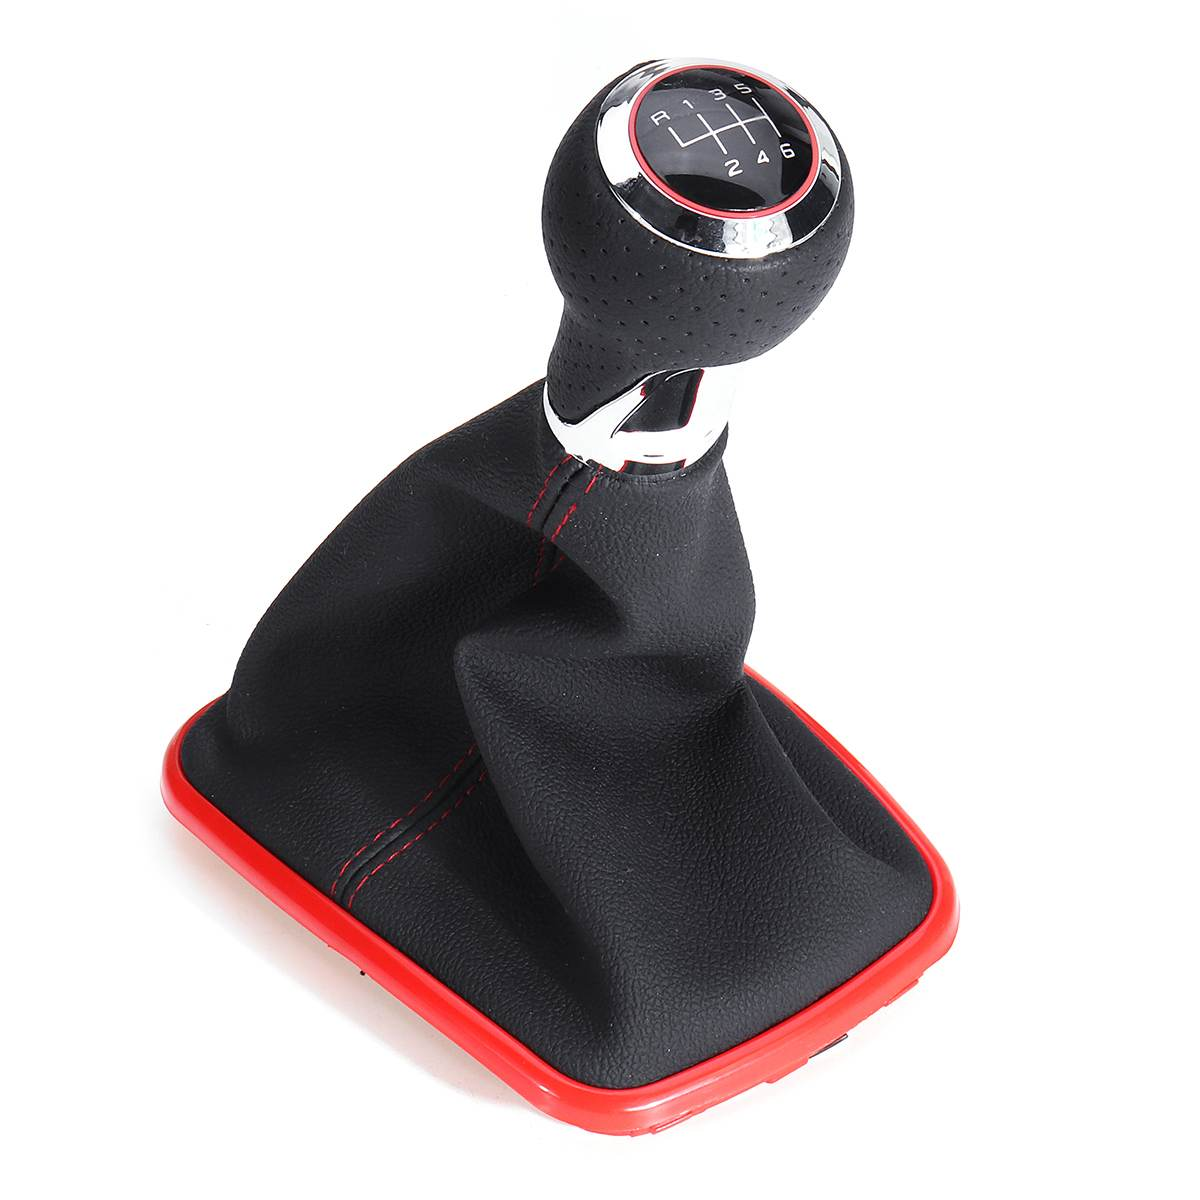 1x Car Gear Shift Knob With Boot Cover 5-speed/ 6-speed For Volkswagen Jetta Mk4 Golf/gti/r32 1999-2005 Jetta/bora 1999-2004 Can Be Repeatedly Remolded.